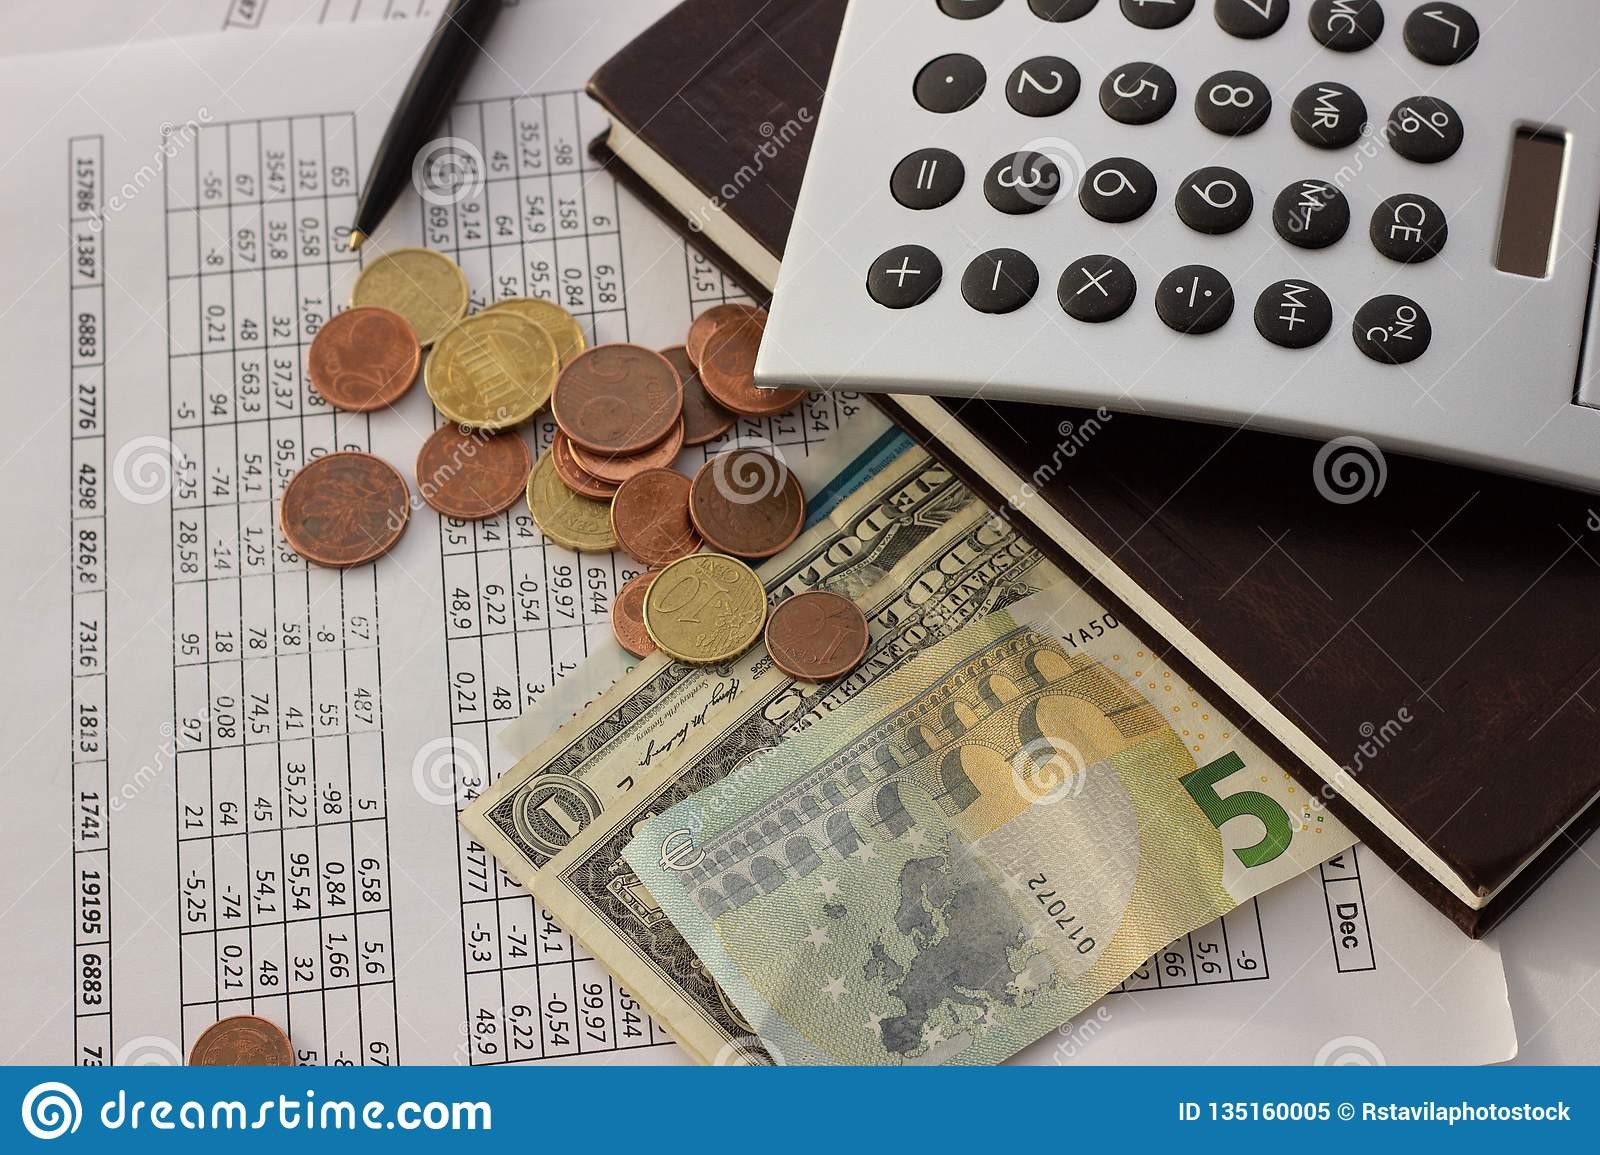 Accounting, business calculations, calculator, counting of funds